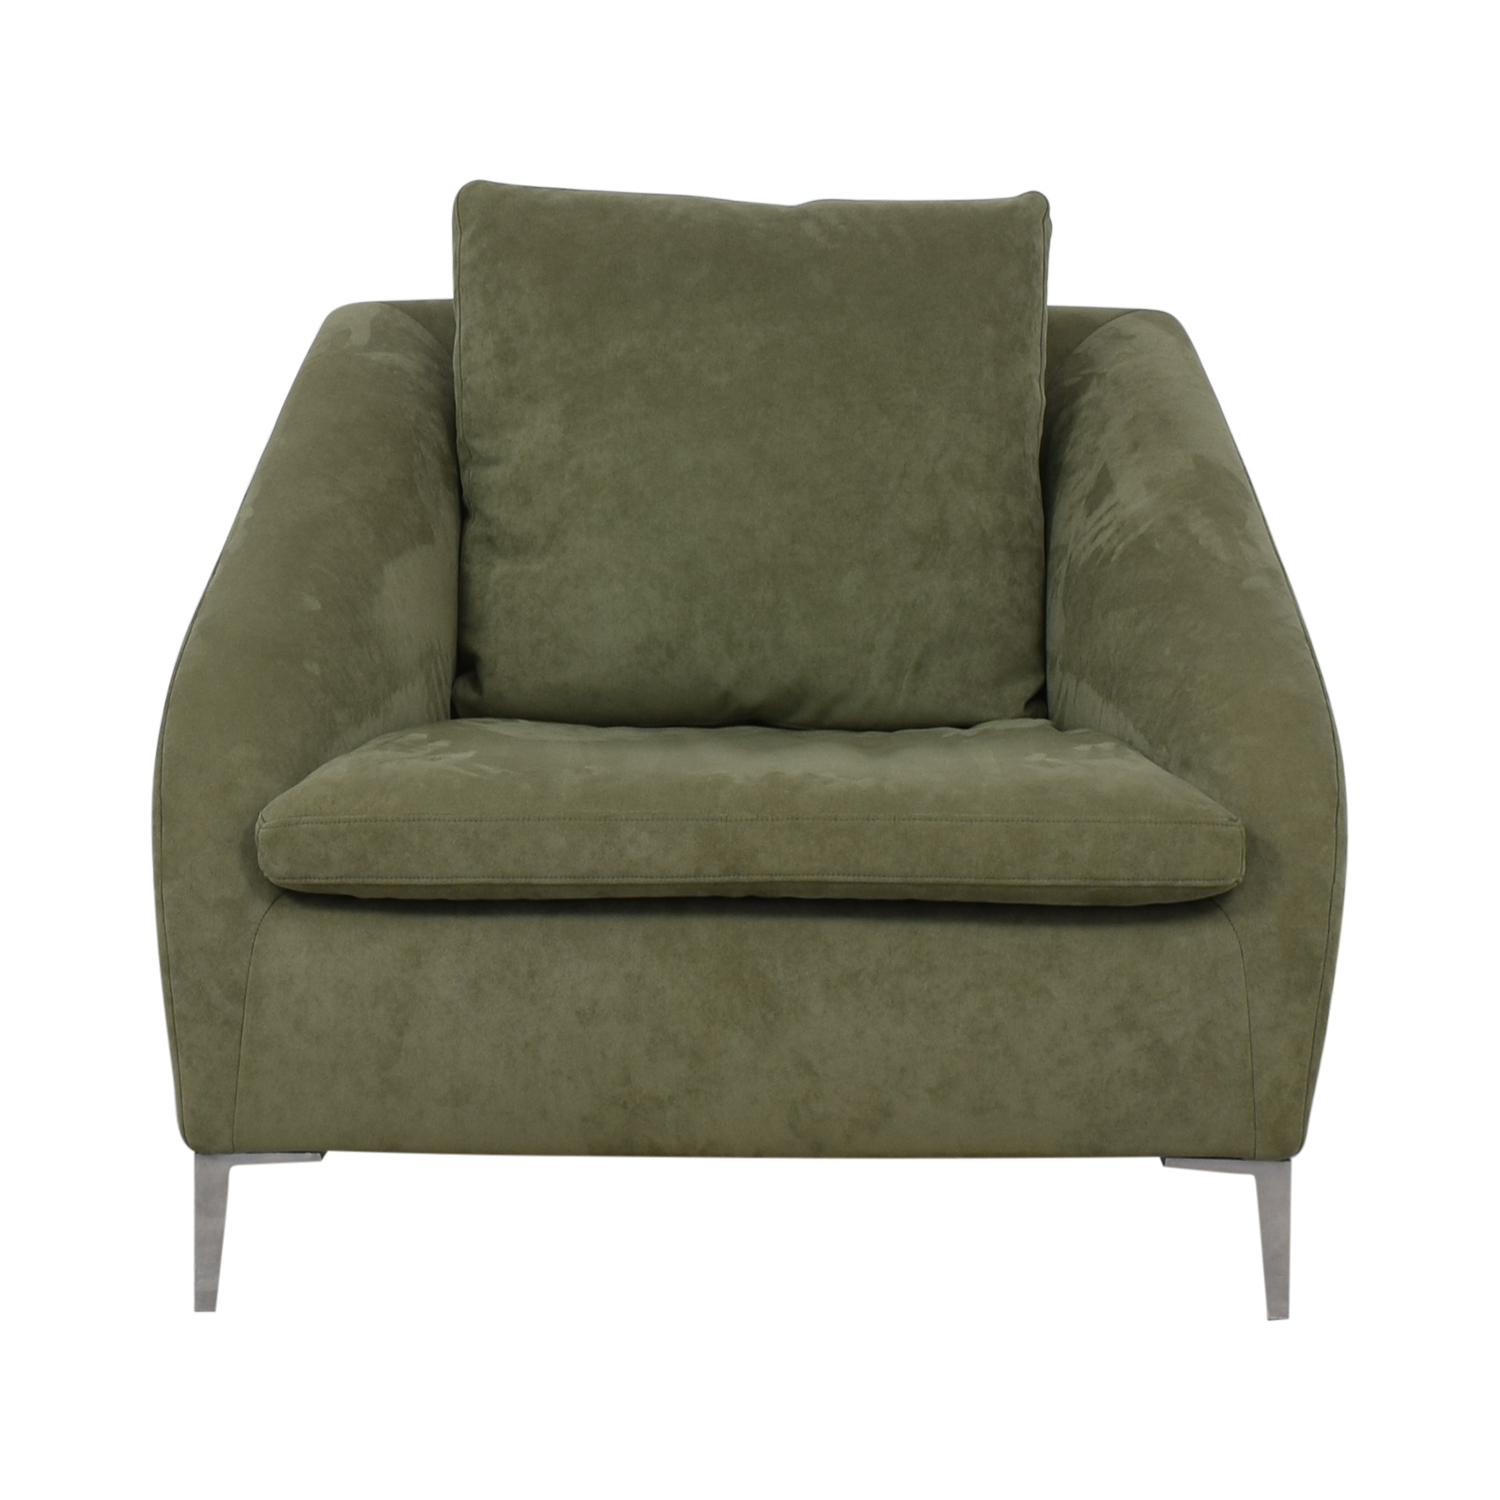 Ligne Roset Ligne Roset Arm Chair price